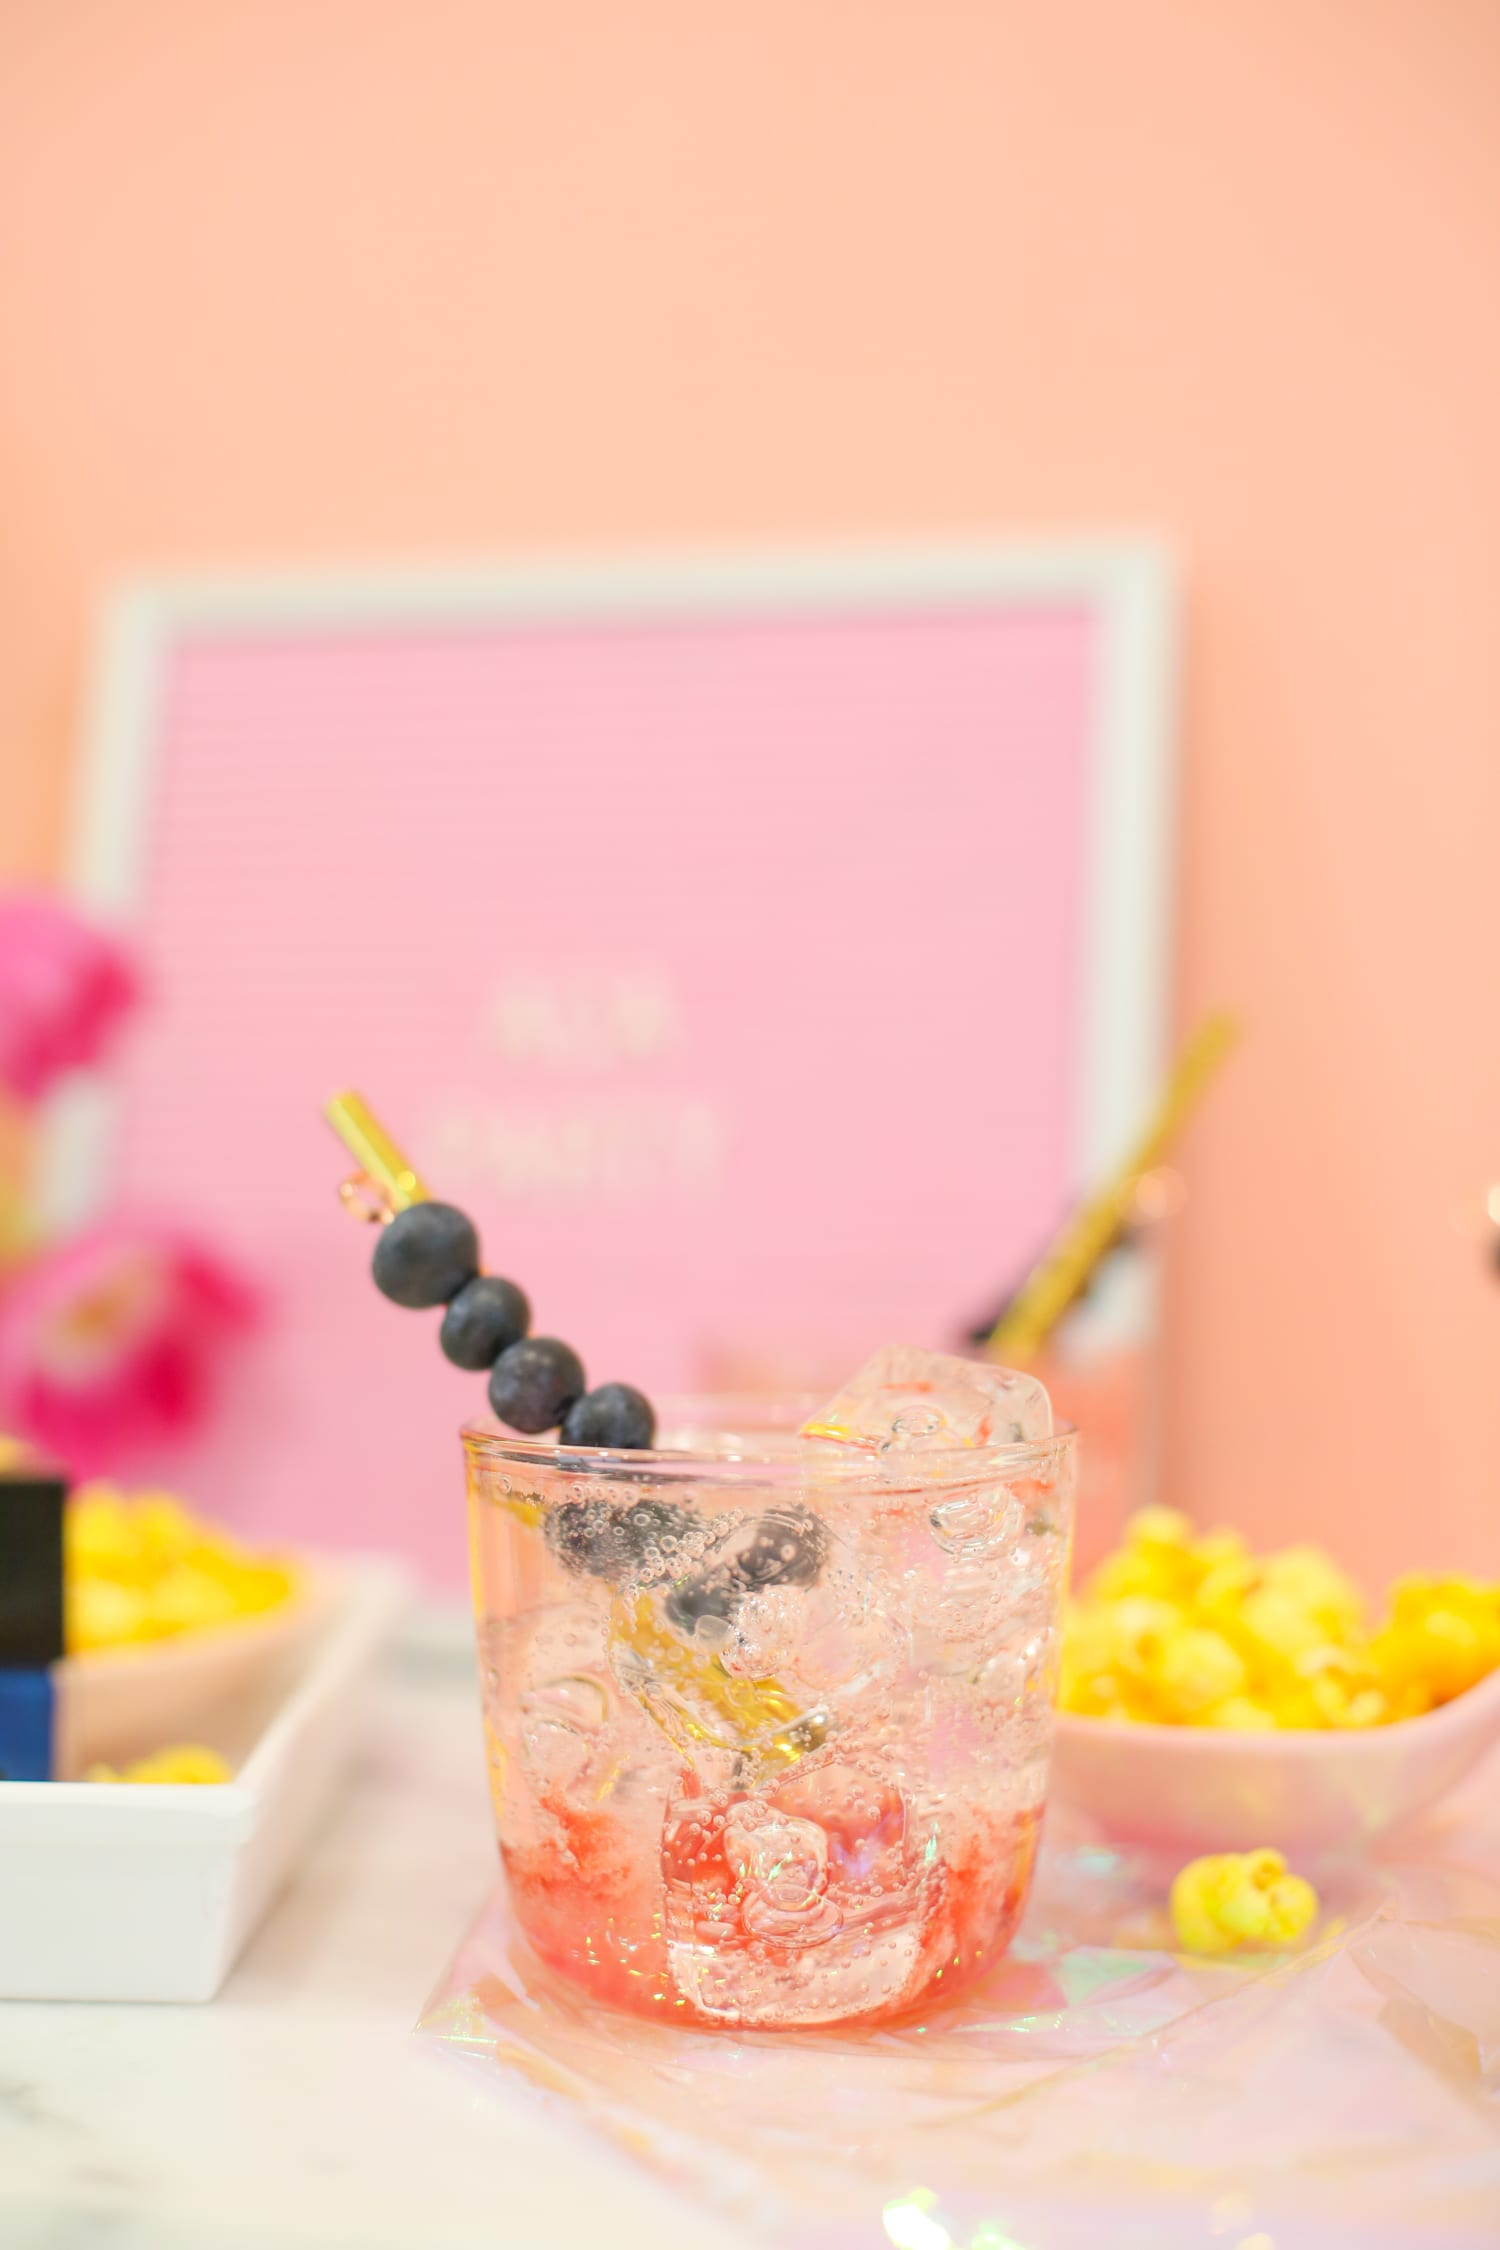 Throw a ladies' movie night with this cocktail recipe